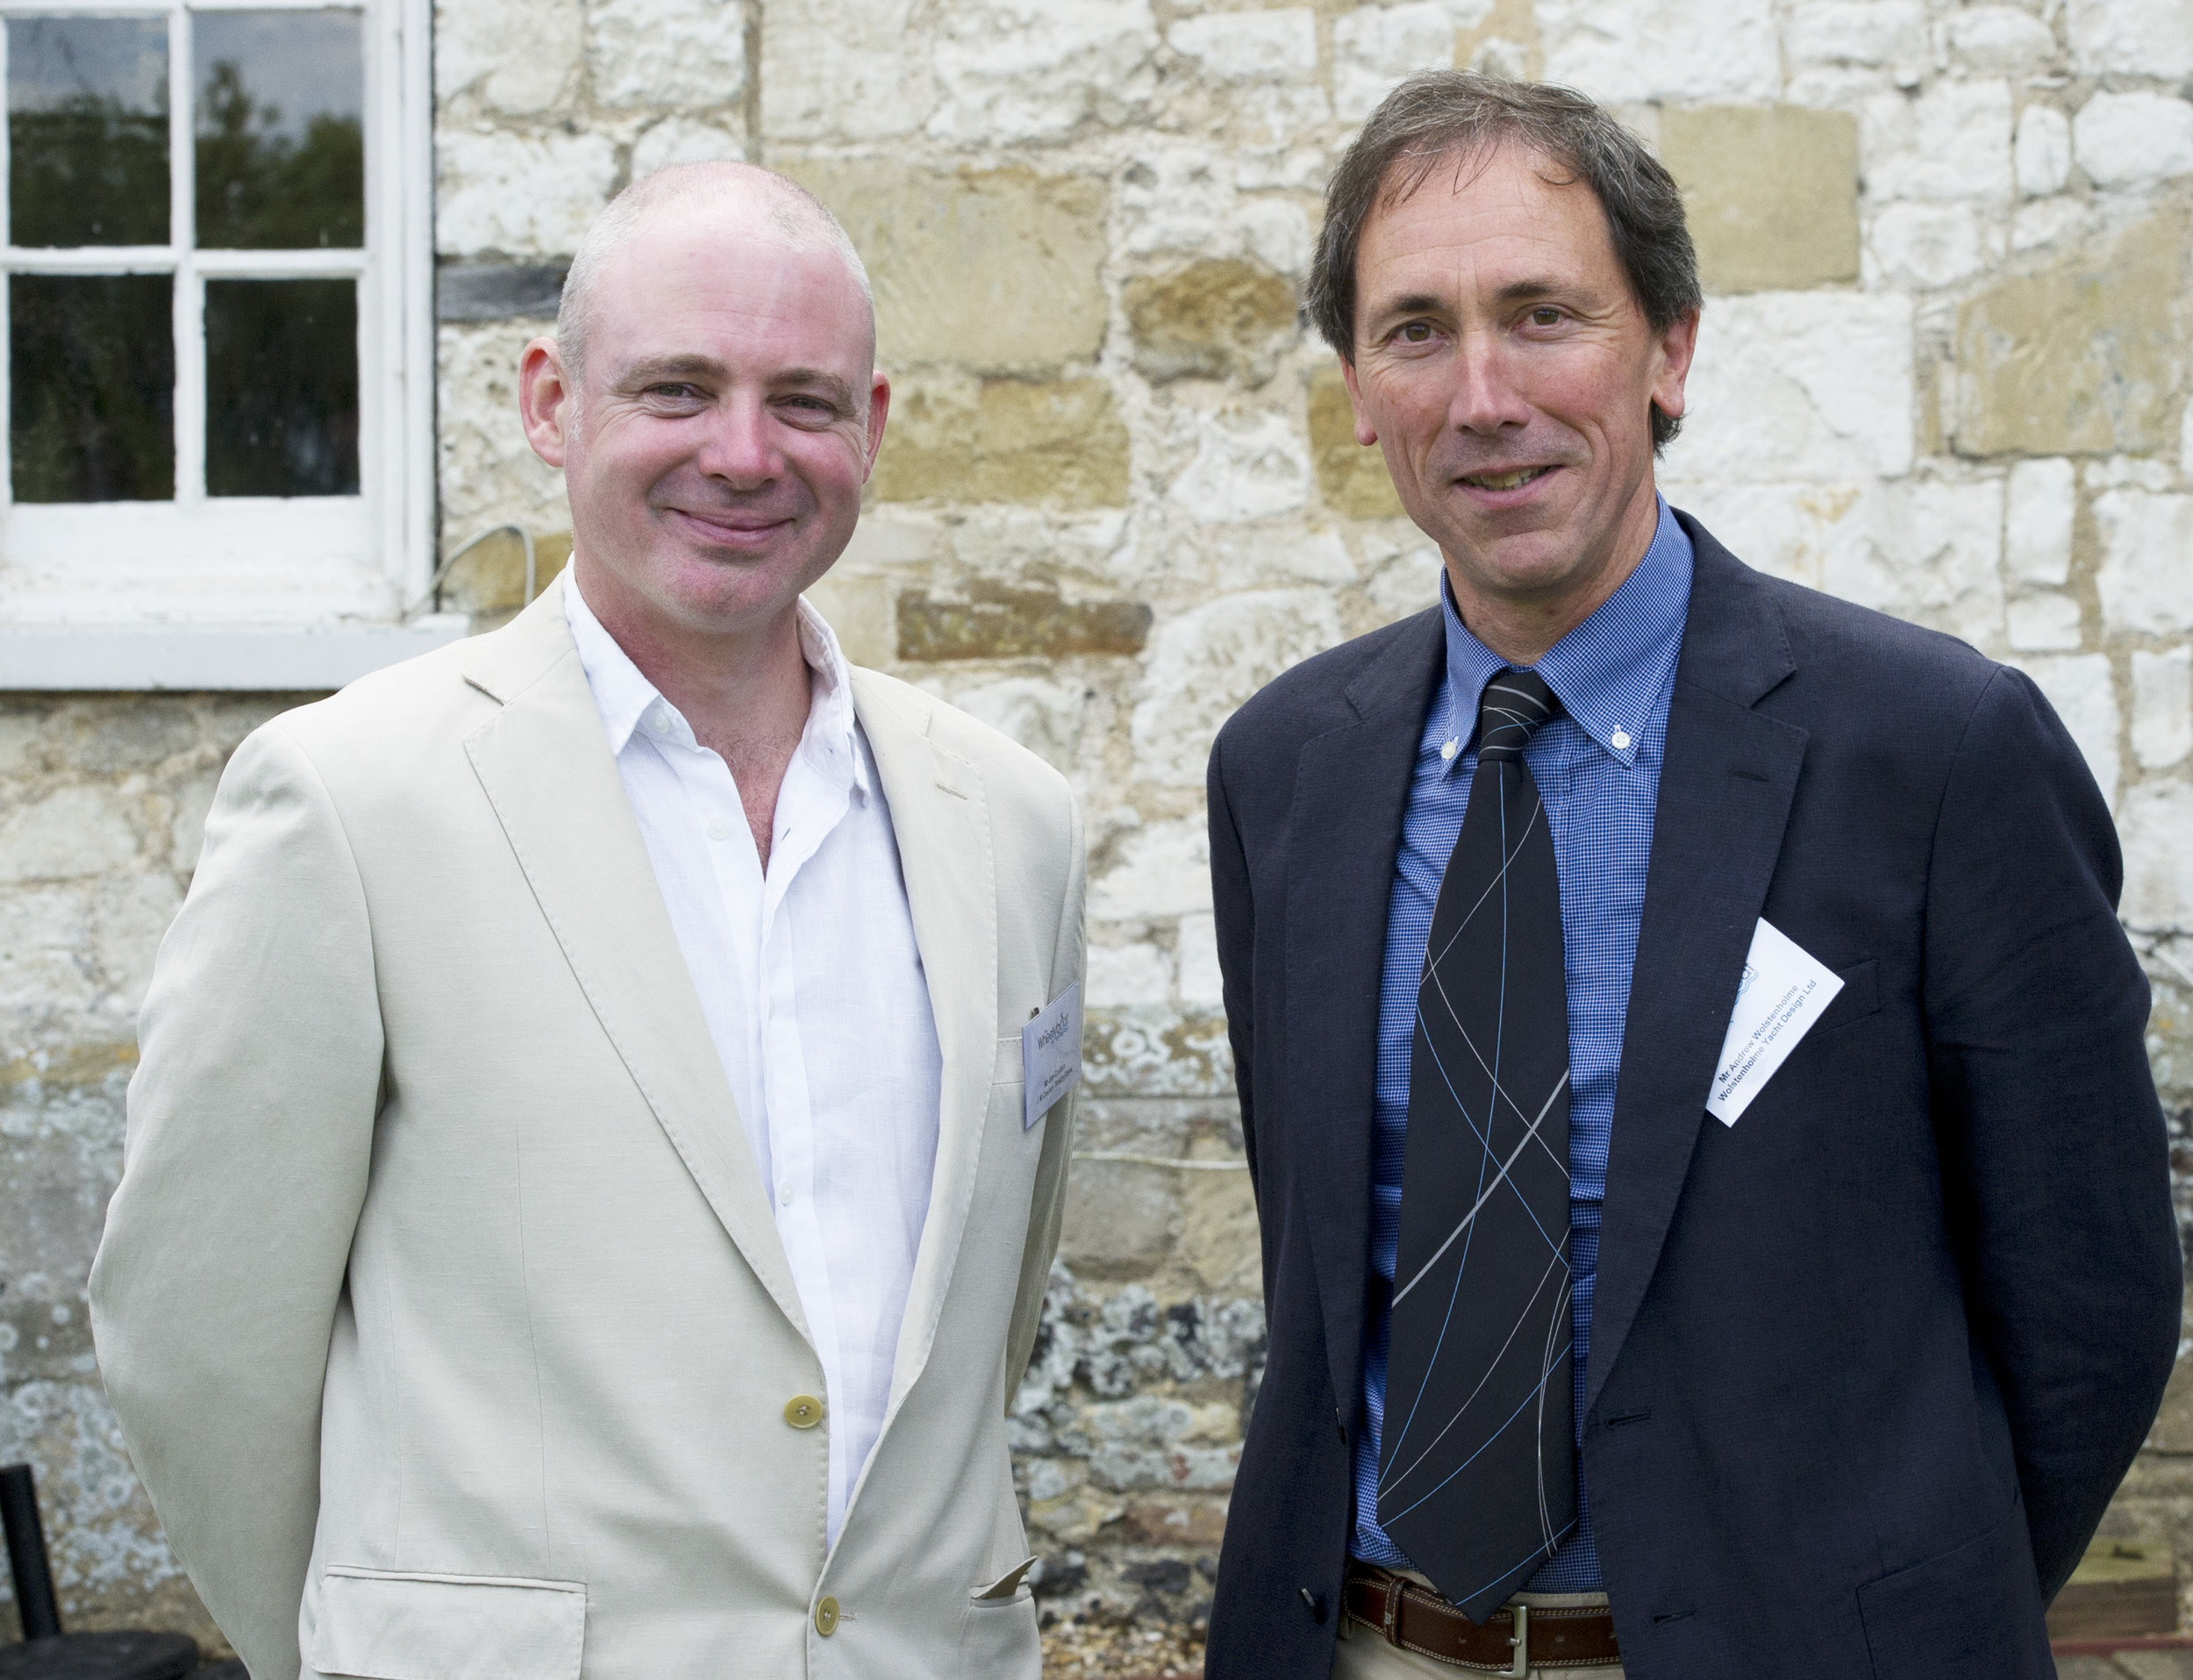 L to r: Jim Coulam and Andrew Wolstenholme at the launch of the Coulam Wheelyboat V20 and celebration of The Wheelyboat Trust's 30th anniversary, Bisham Abbey July 2014.